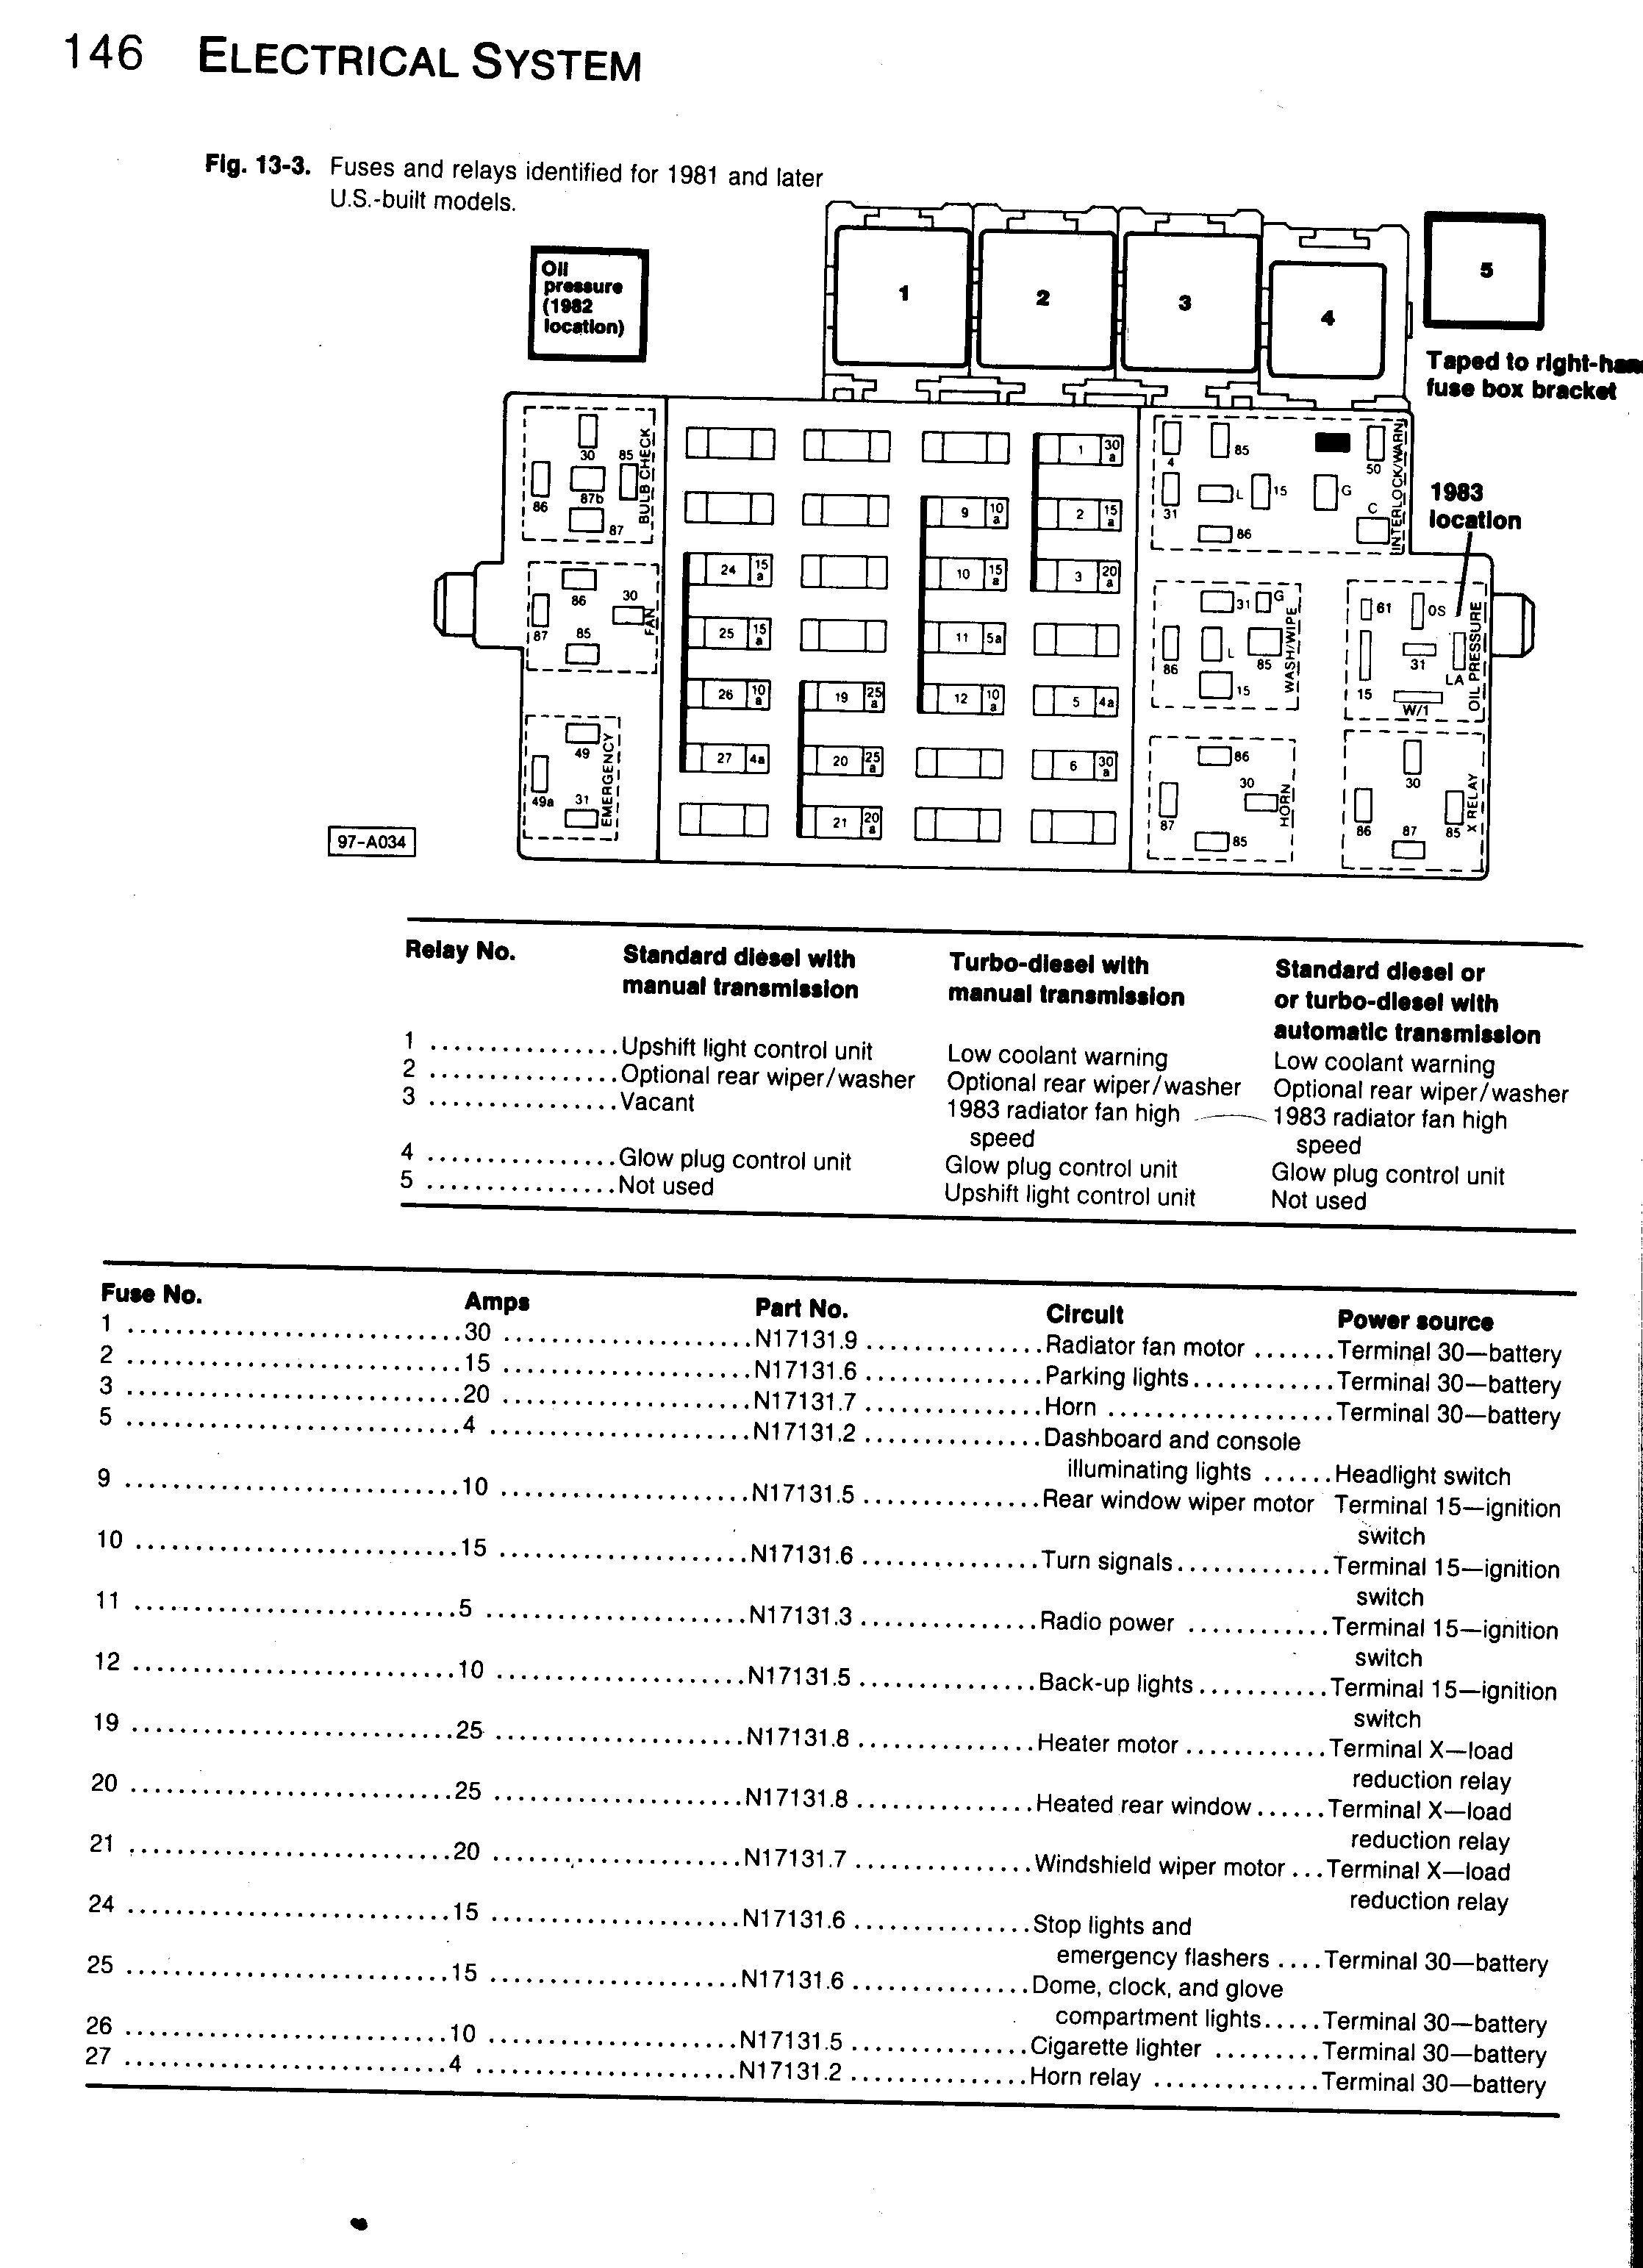 [DIAGRAM_4PO]  2006 Vw Beetle Fuse Box Diagram - 2007 Mini Cooper Wiring Diagram for  Wiring Diagram Schematics | 2007 Vw Beetle Fuse Box |  | Wiring Diagram Schematics